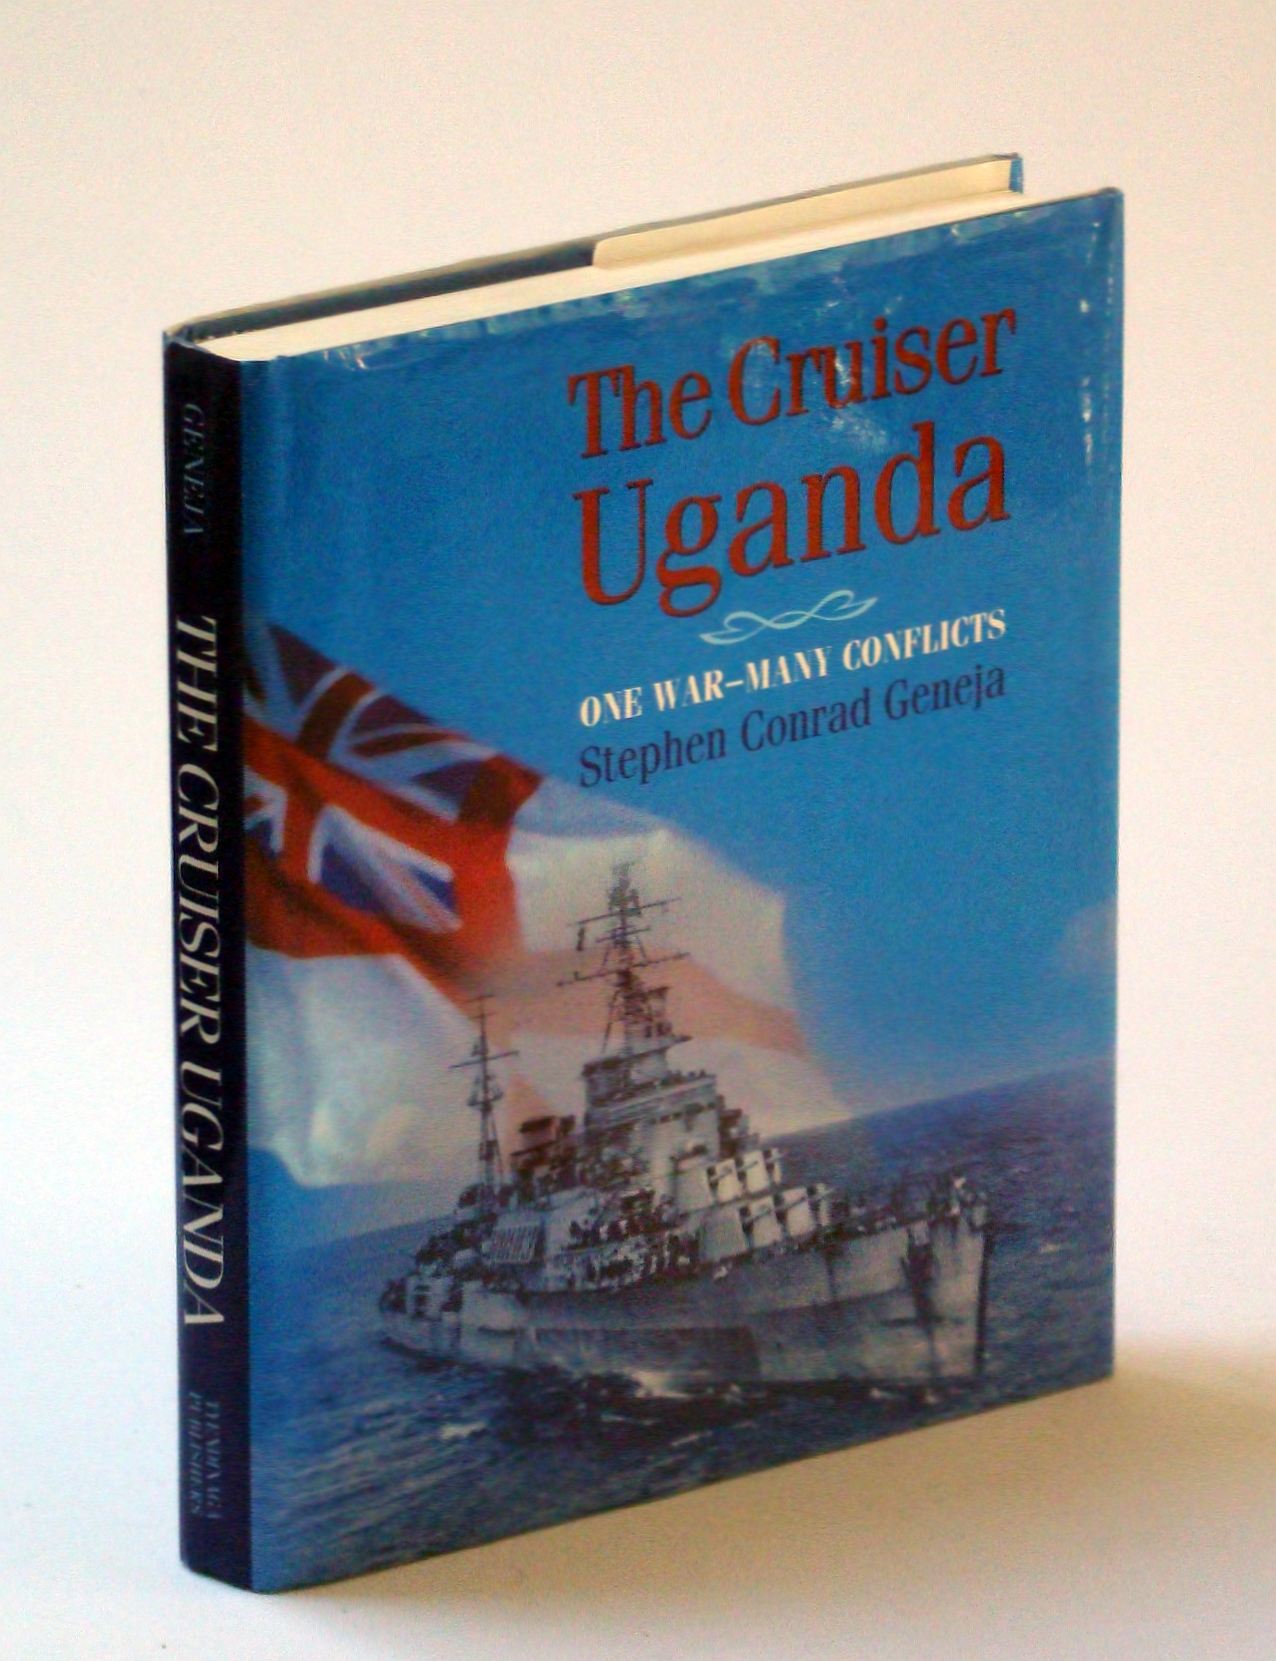 The Cruiser Uganda: One War - Many Conflicts